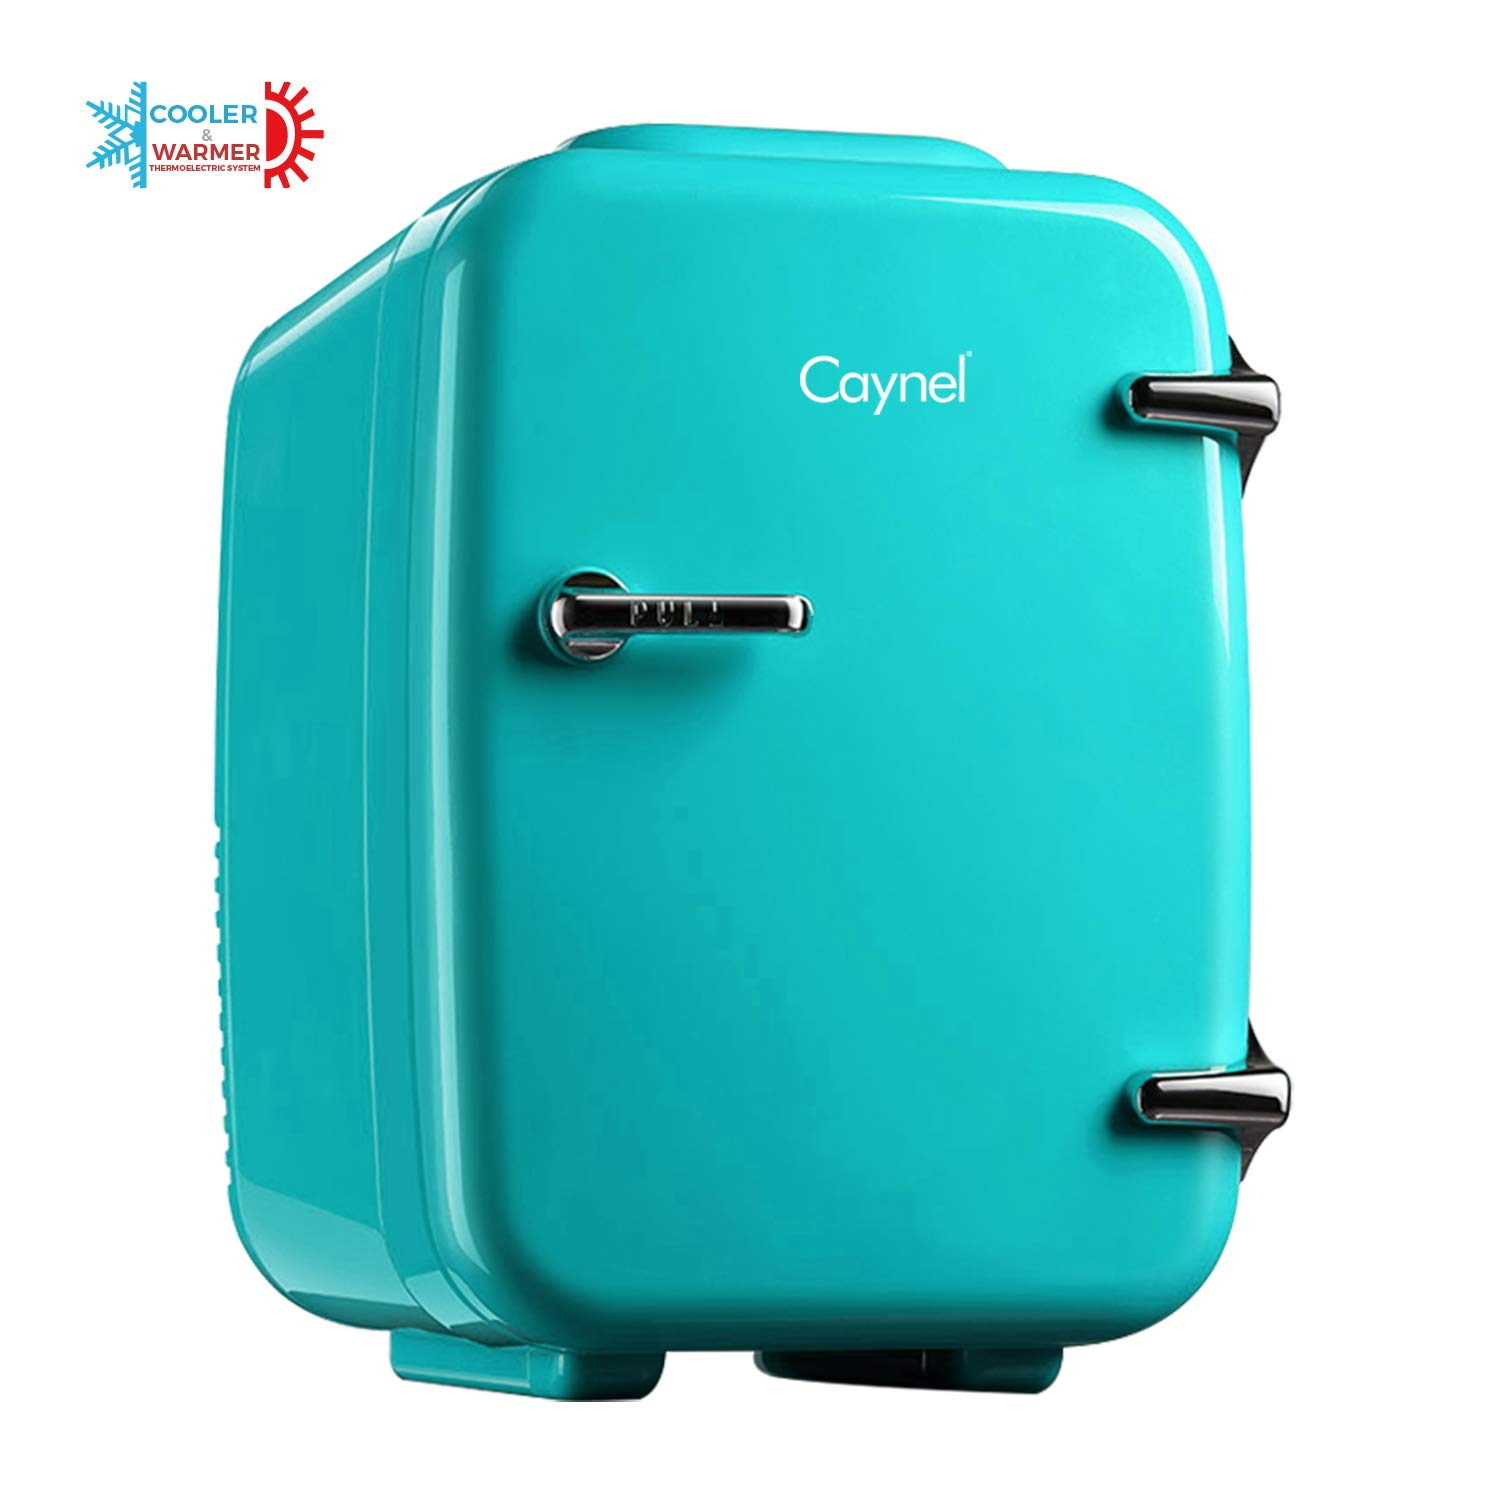 CAYNEL Mini Fridge Cooler and Warmer, 4Liter 6Can Portable Compact Personal Fridge, AC DC Thermoelectric System, 100 Freon-Free Eco Friendly for Home, Office and Car, Includes 100-Pcs Stickers